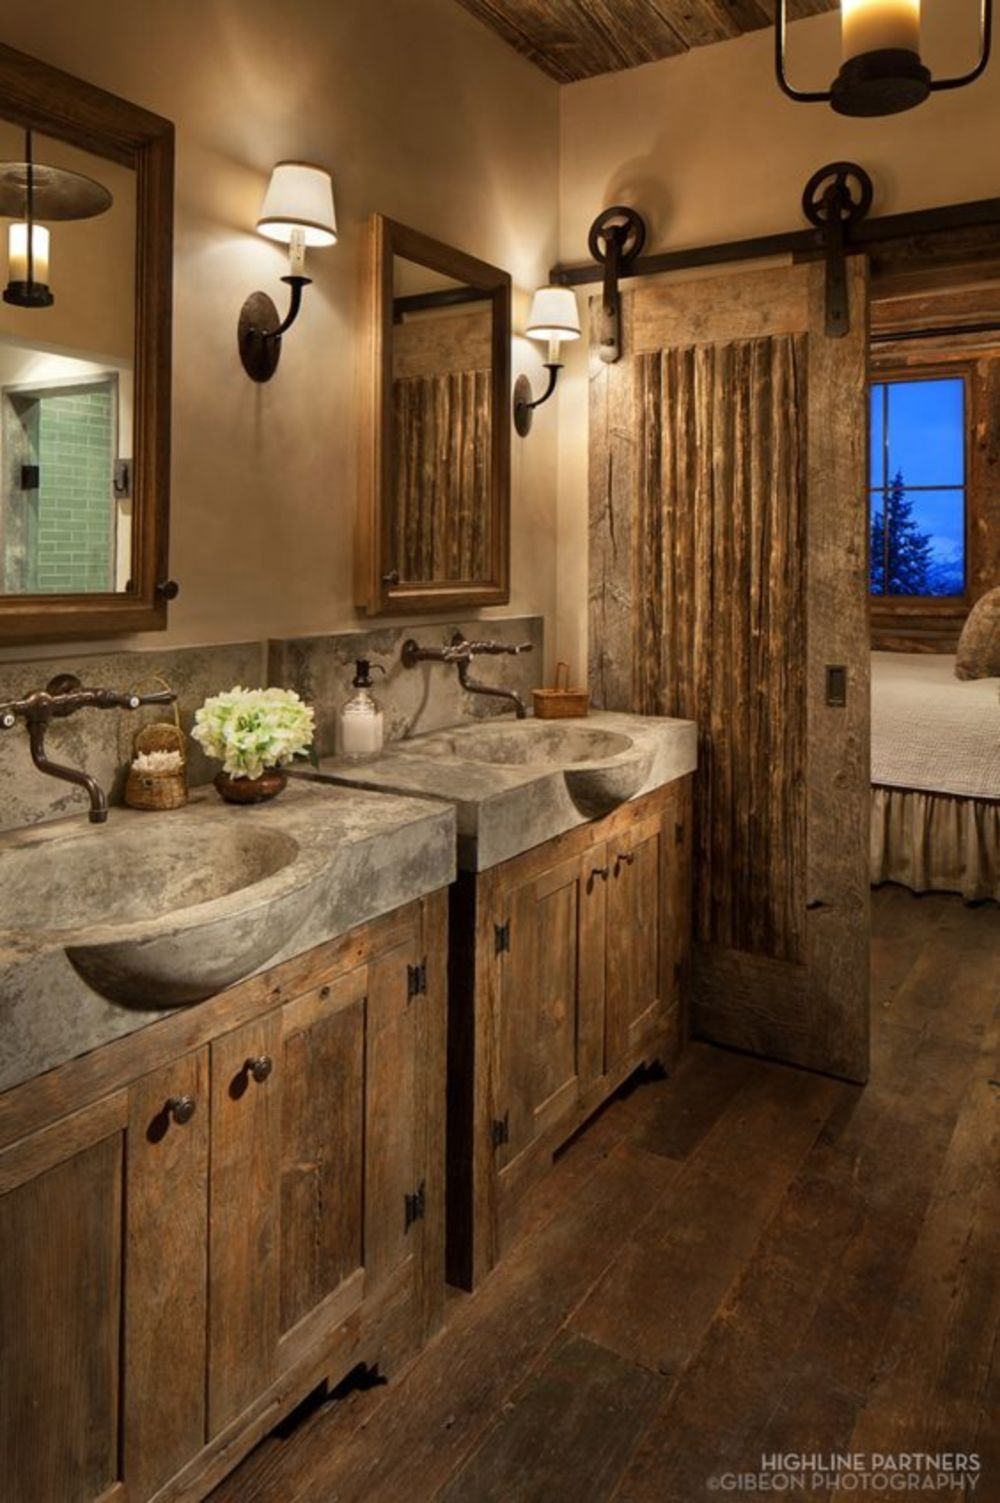 Pin by Cabin Fever Crafted on house Pinterest Bathroom Rustic